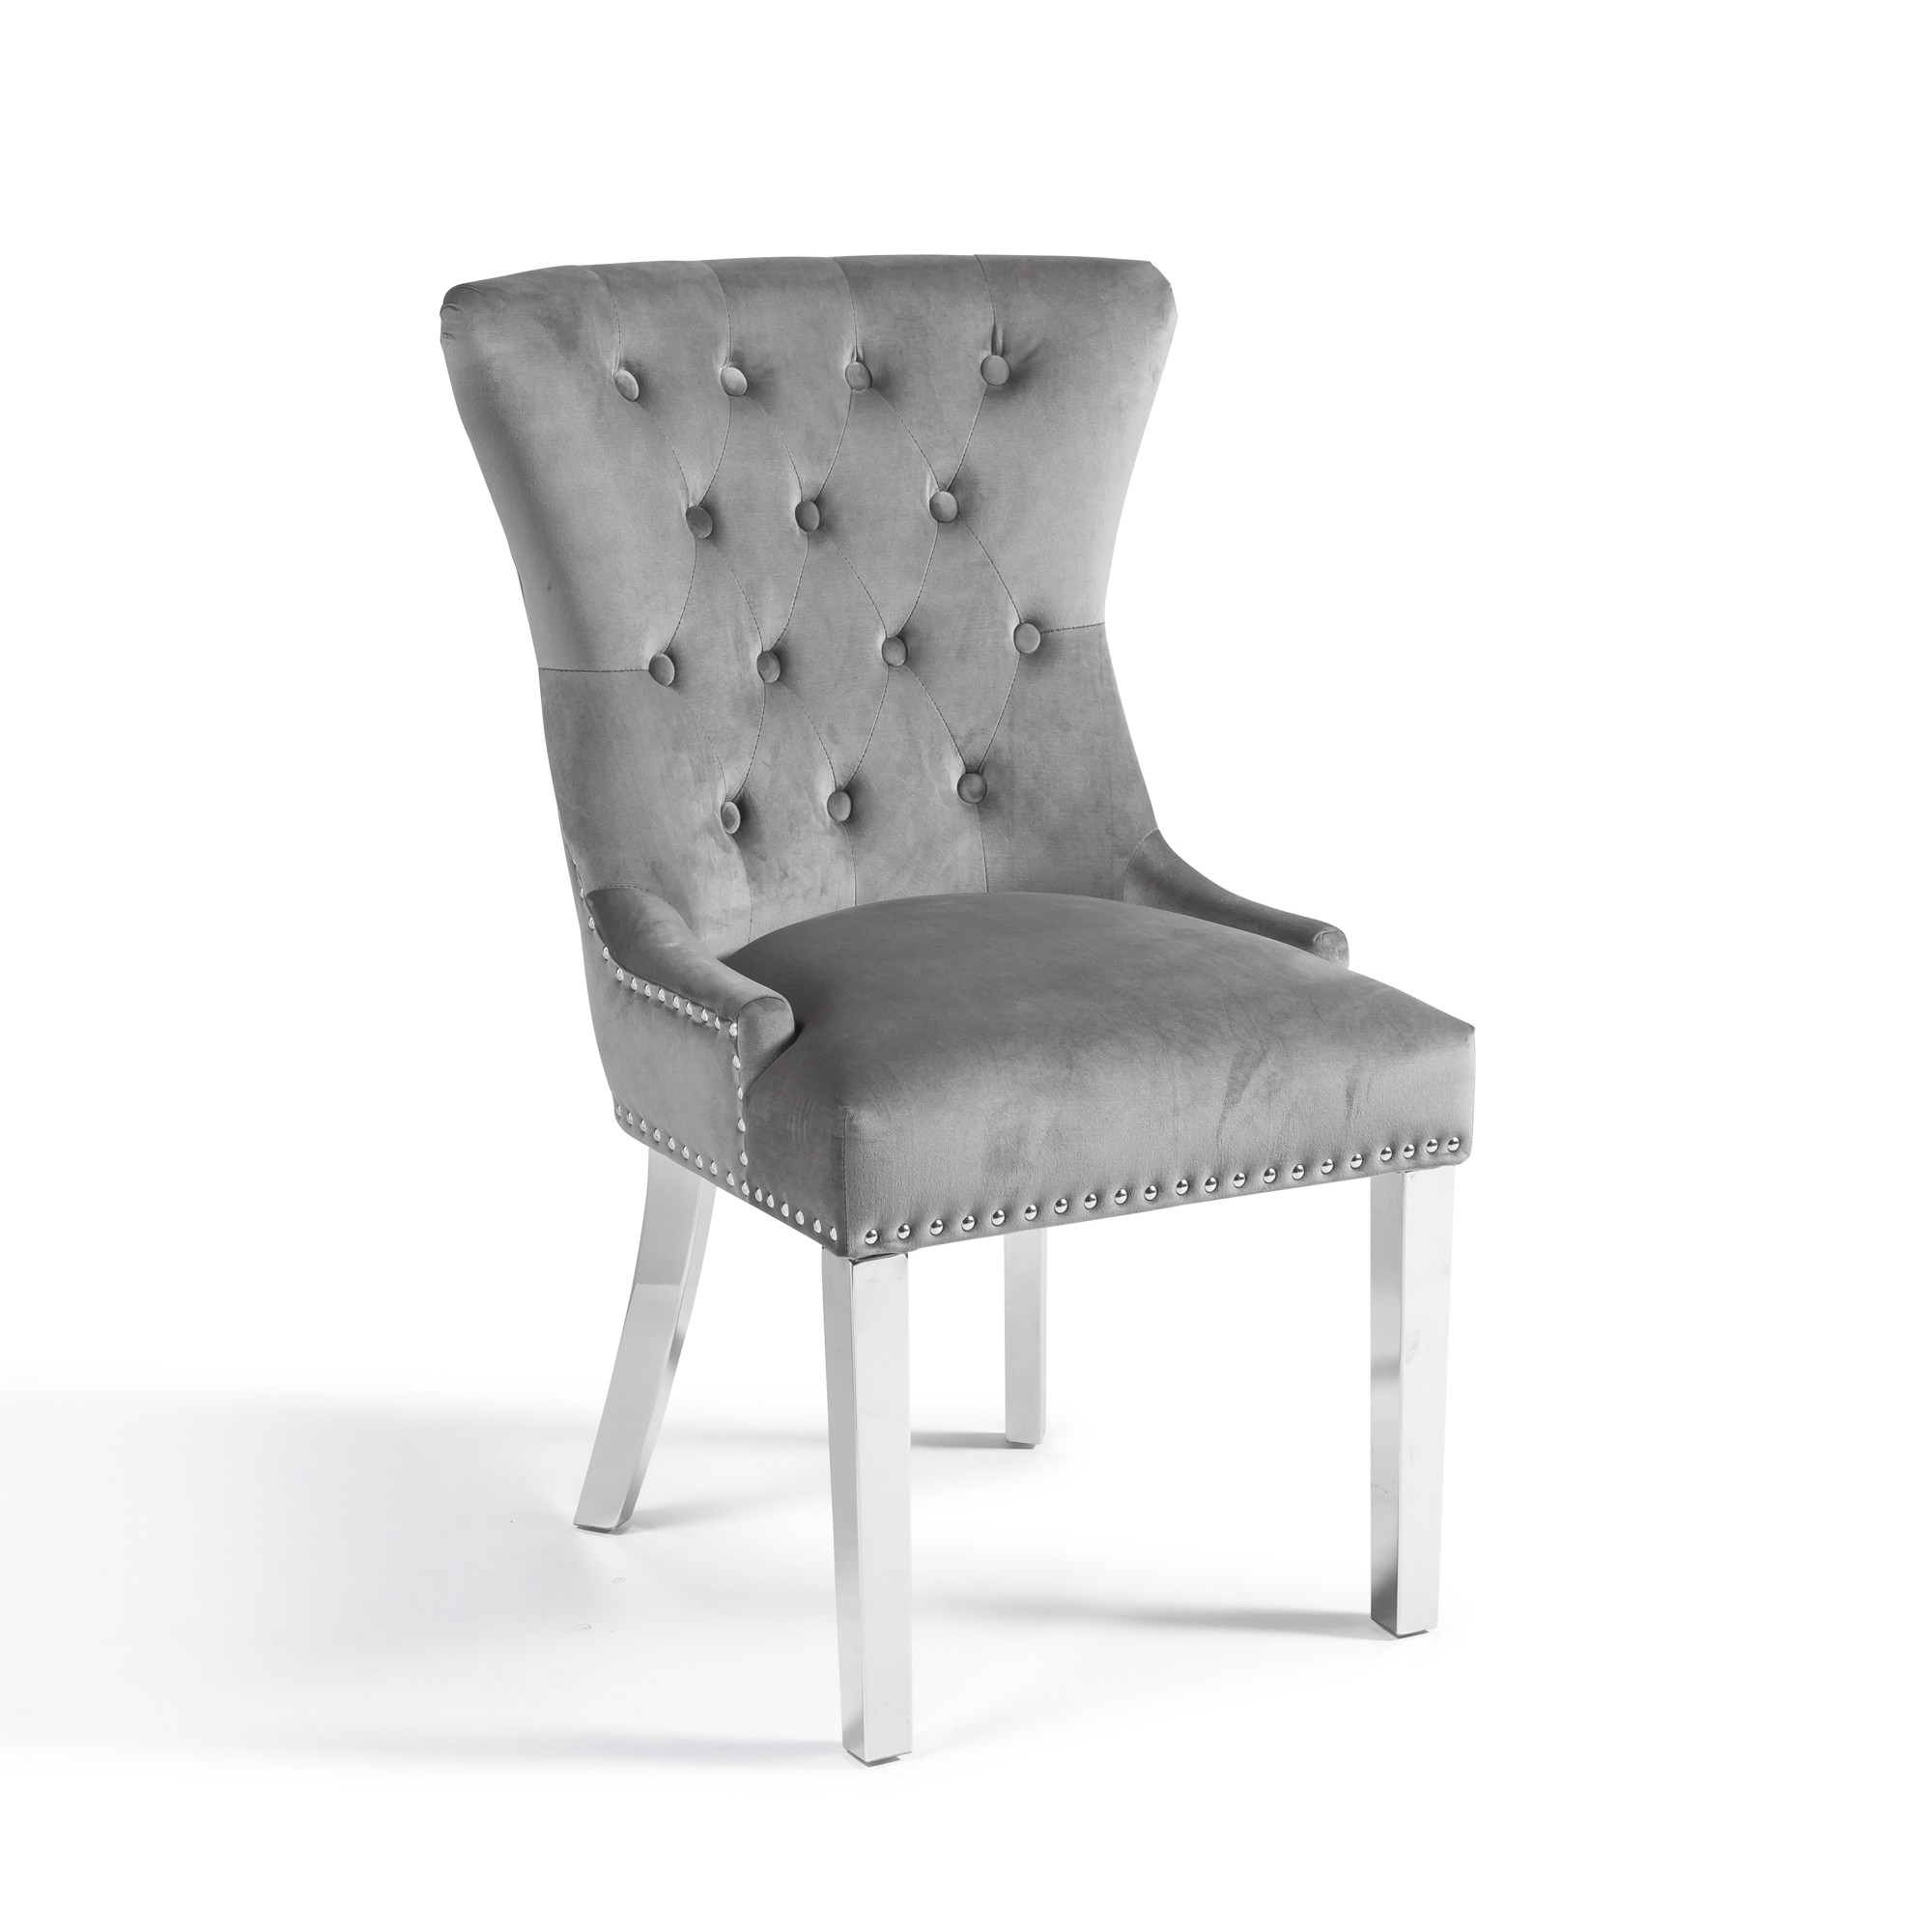 Knightsbridge Grey Brushed Velvet Dining Chair with Polished Stainless Steel Legs with Lions Head Knocker